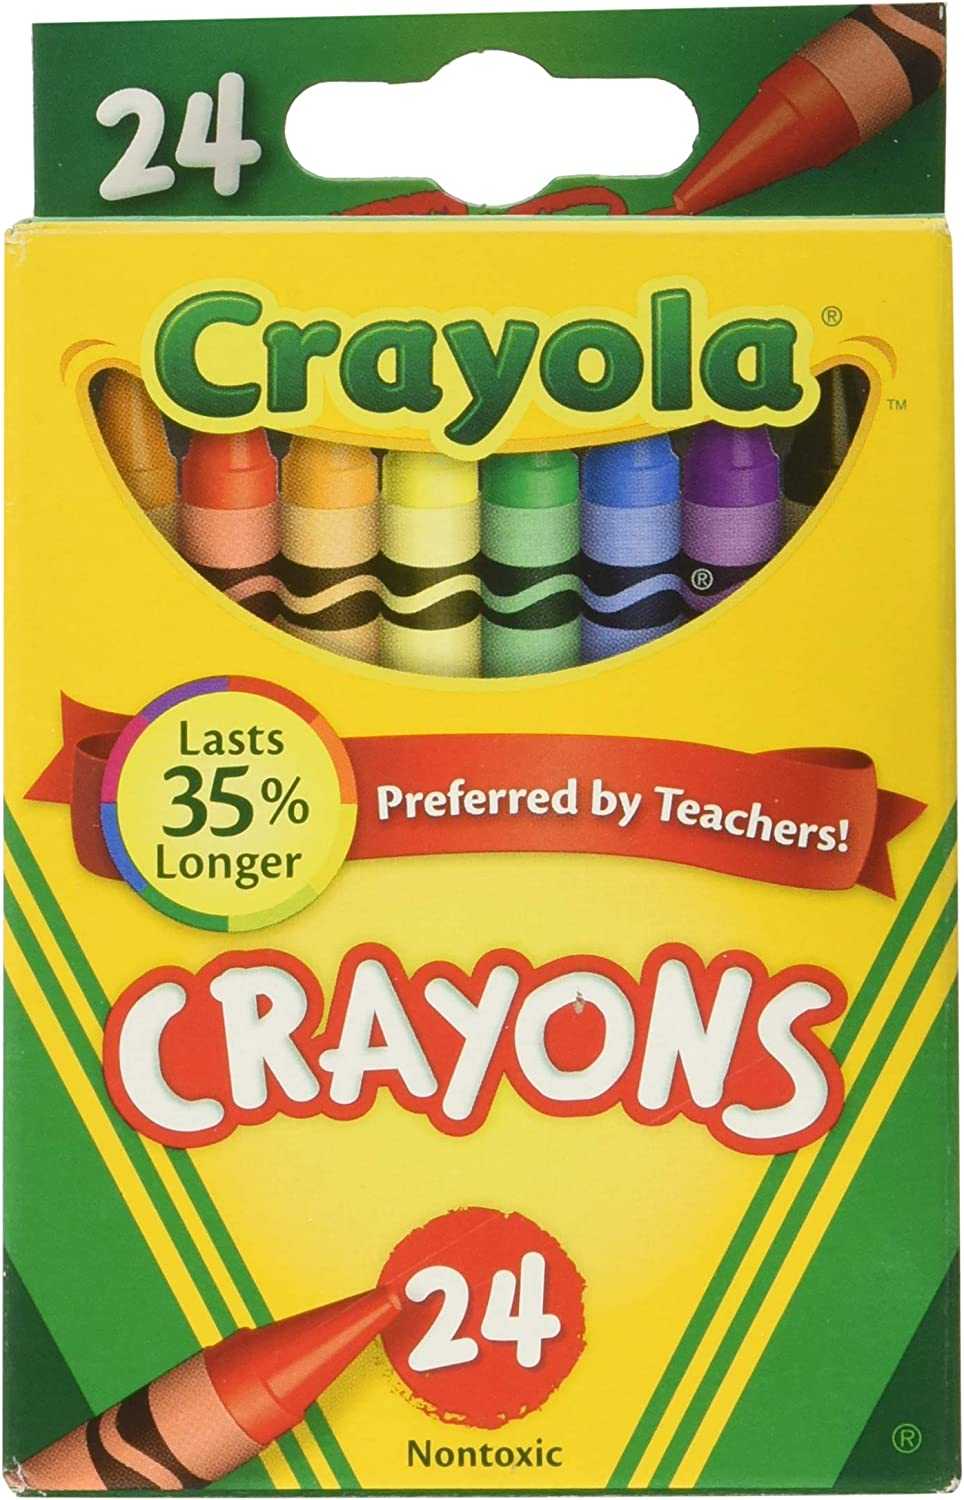 12 Crayon Packs with 24 Assorted Colors Crayola Crayons Bulk